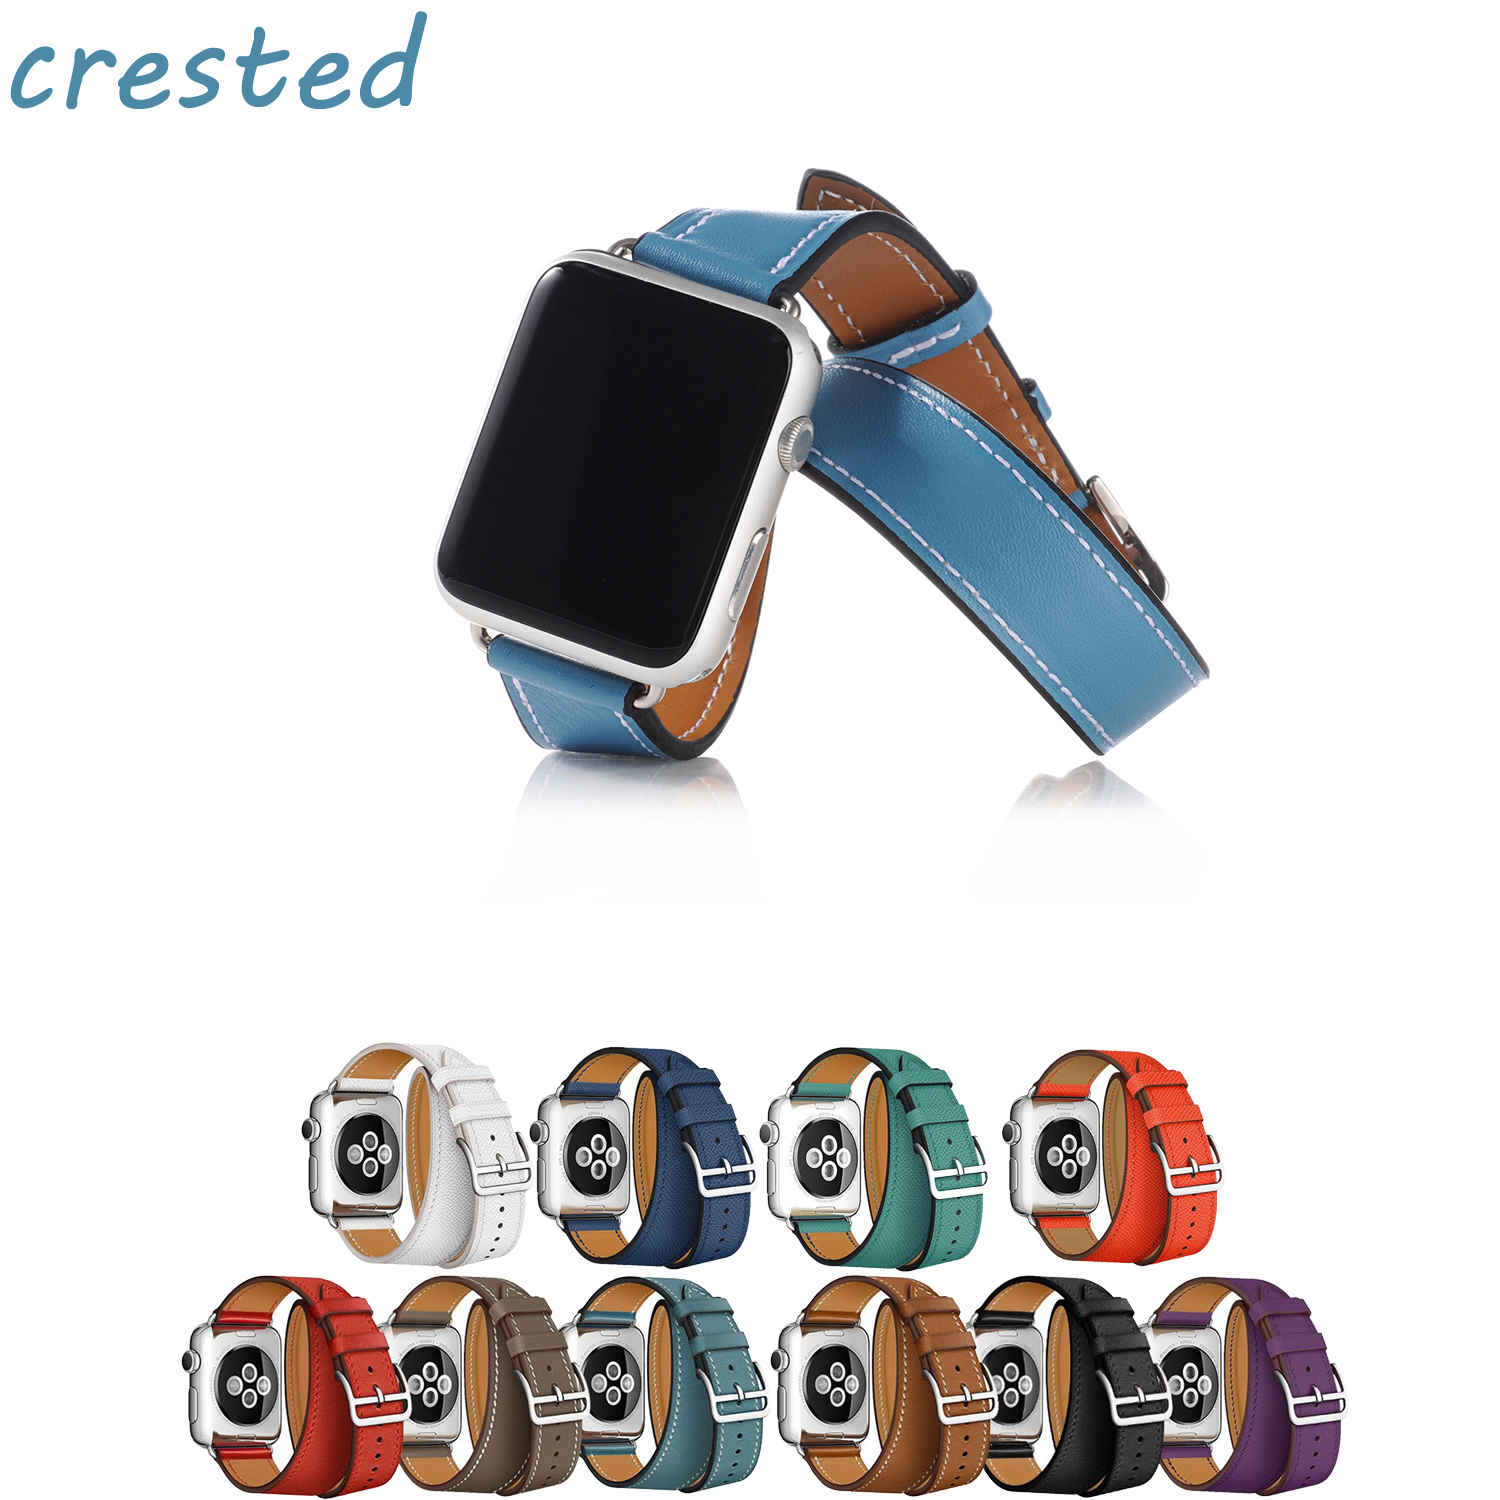 купить CRESTED Genuine Leather watch strap for apple watch band 42mm 38mm bracelet watchband for iwatch 3/2/1 Double tour watch belt по цене 798.56 рублей